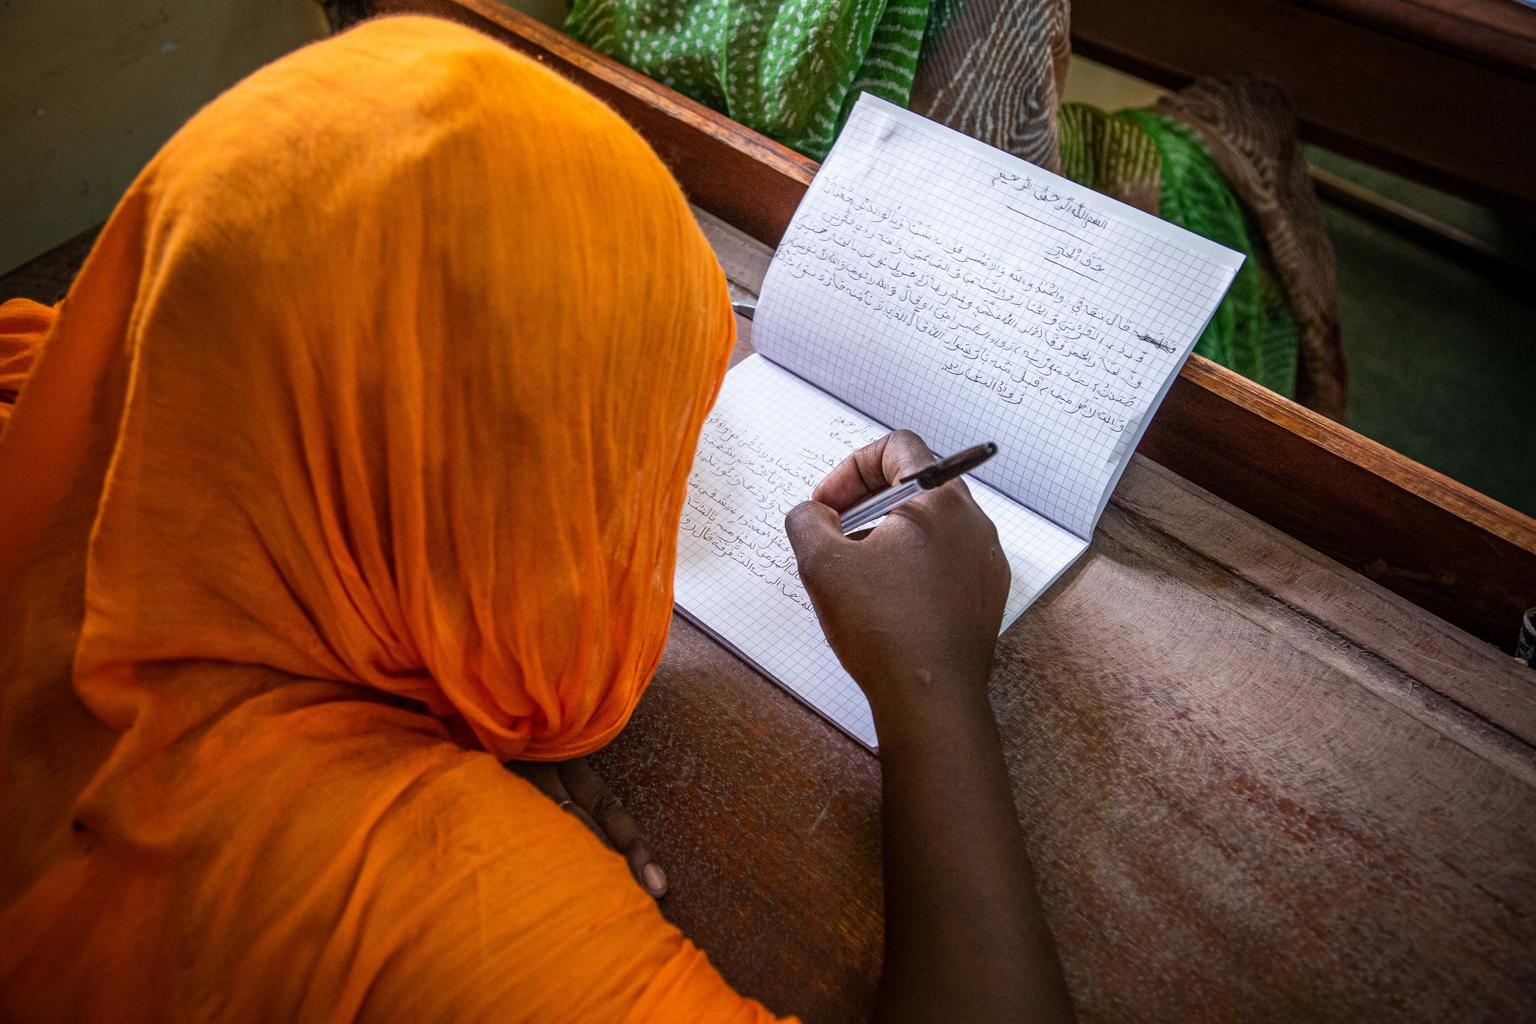 A young girl takes notes during an Arabic language class at a center for girls who are victims of gender-based violence.